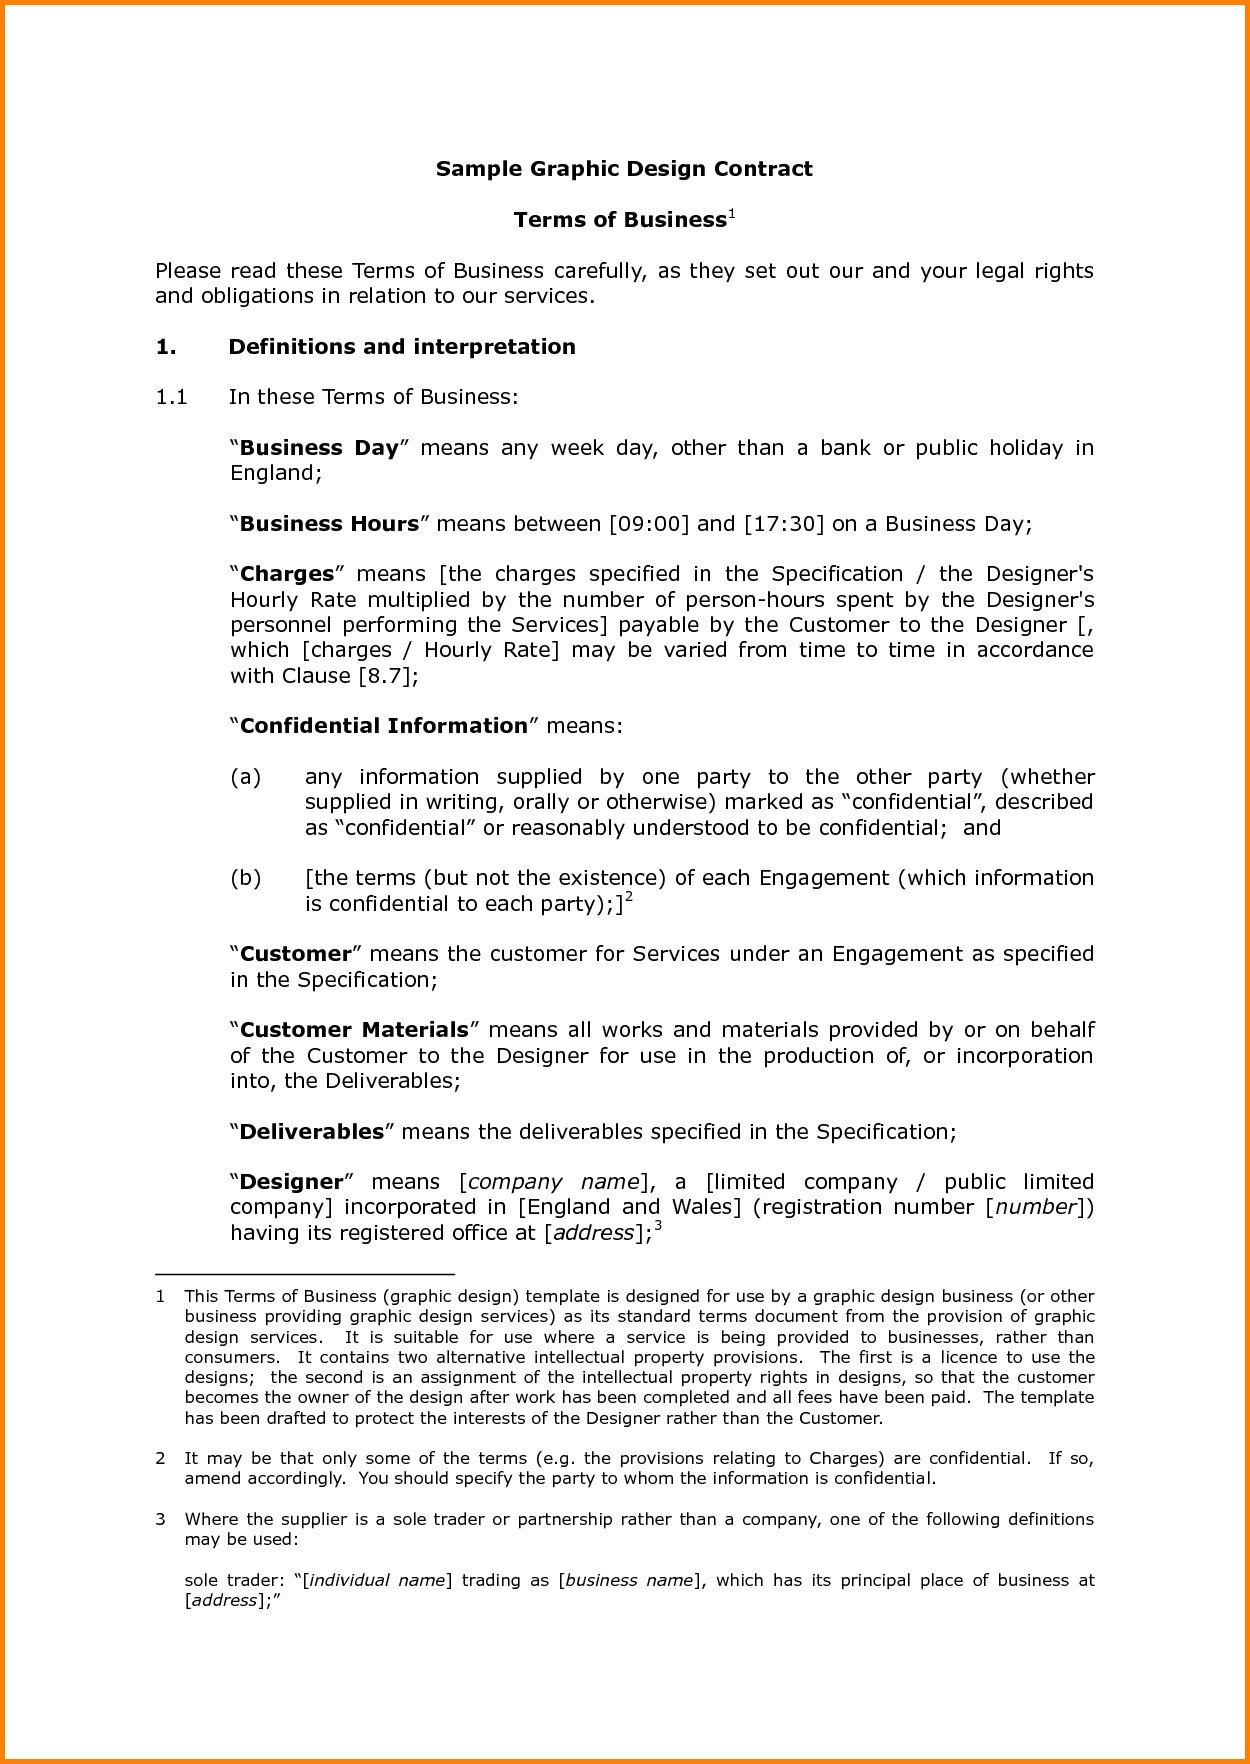 Graphic Design Contract Template Contract Template for Graphic Design Services